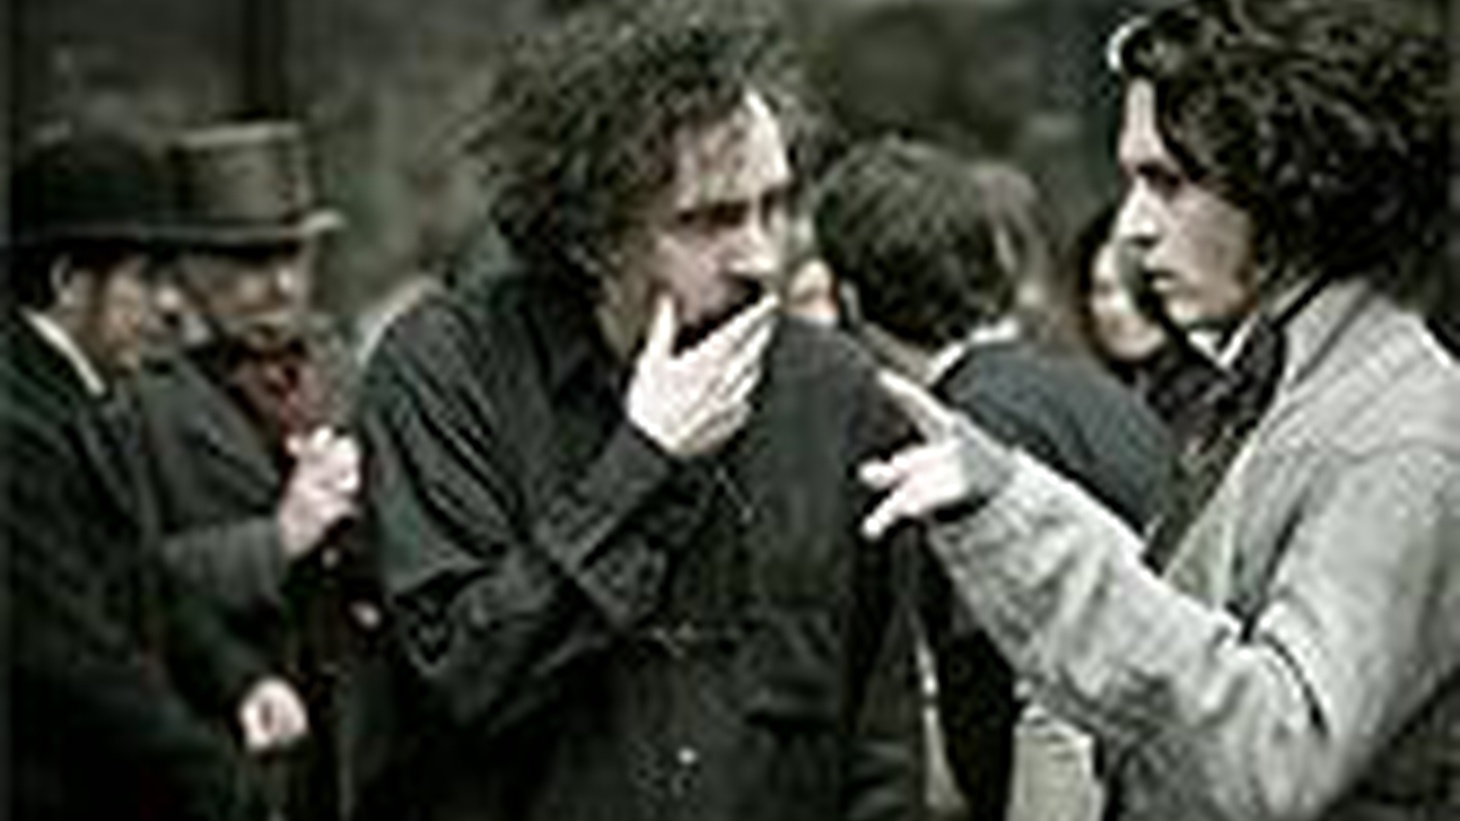 Tim Burton's brilliant blood-soaked screen version of Sweeney Todd stars Johnny Depp and Helena Bonham Carter. The movie begins with sticky globules of blood on the wheels and cogs of what can only be [gulp] a meat grinder... By now we know the nature of the meat and the gist of the ghastly story...